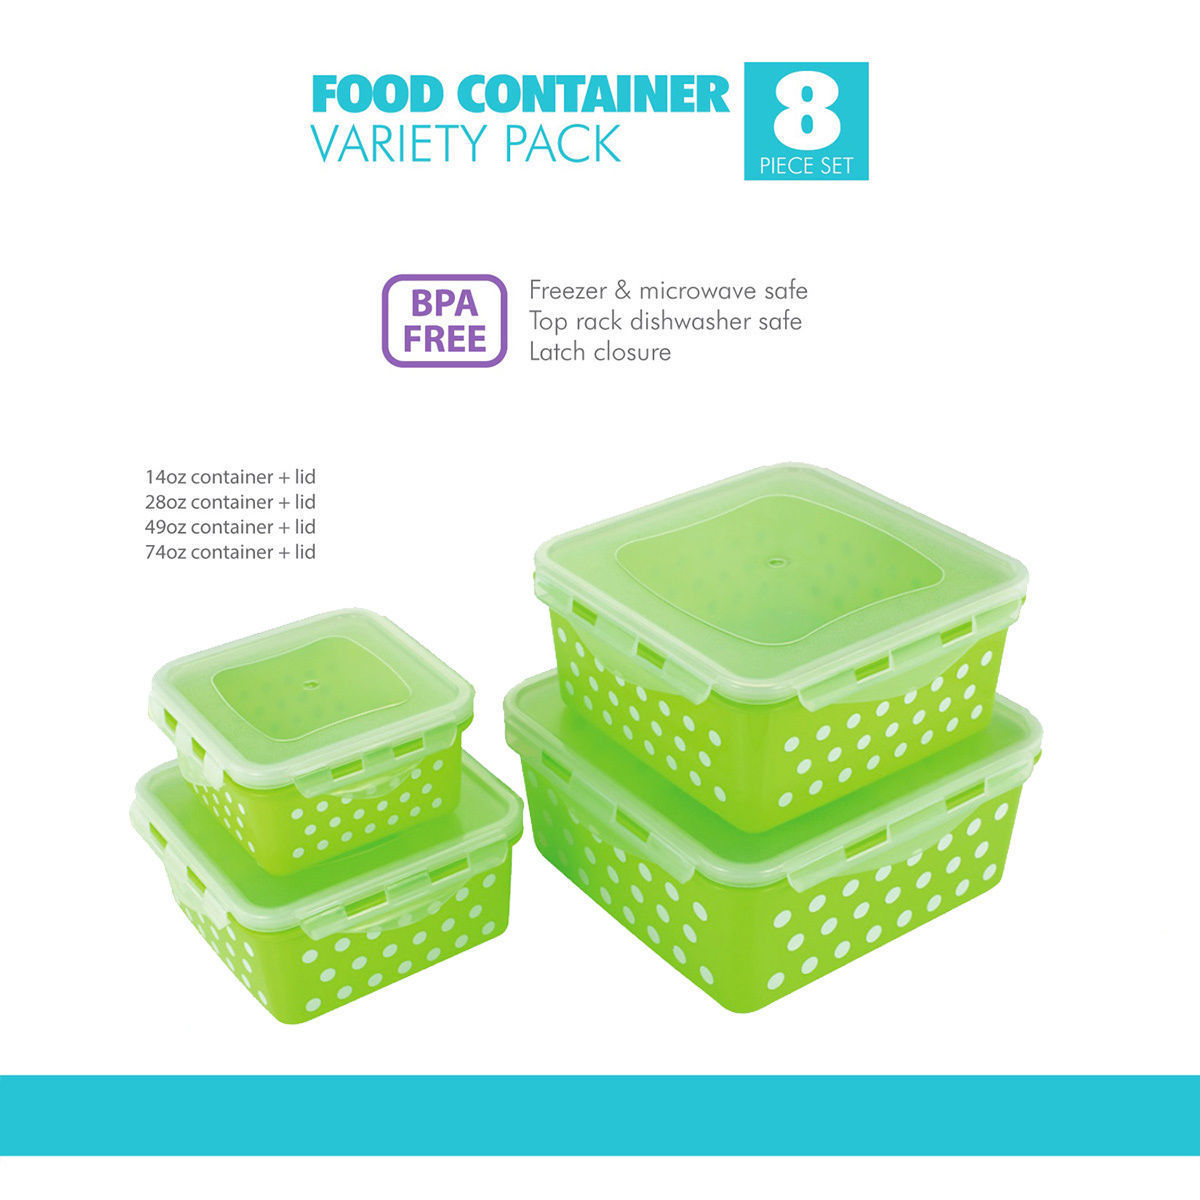 Square Airtight Food Storage Lock Container 8 PC Lime Green Polka Dots BPA Free 1